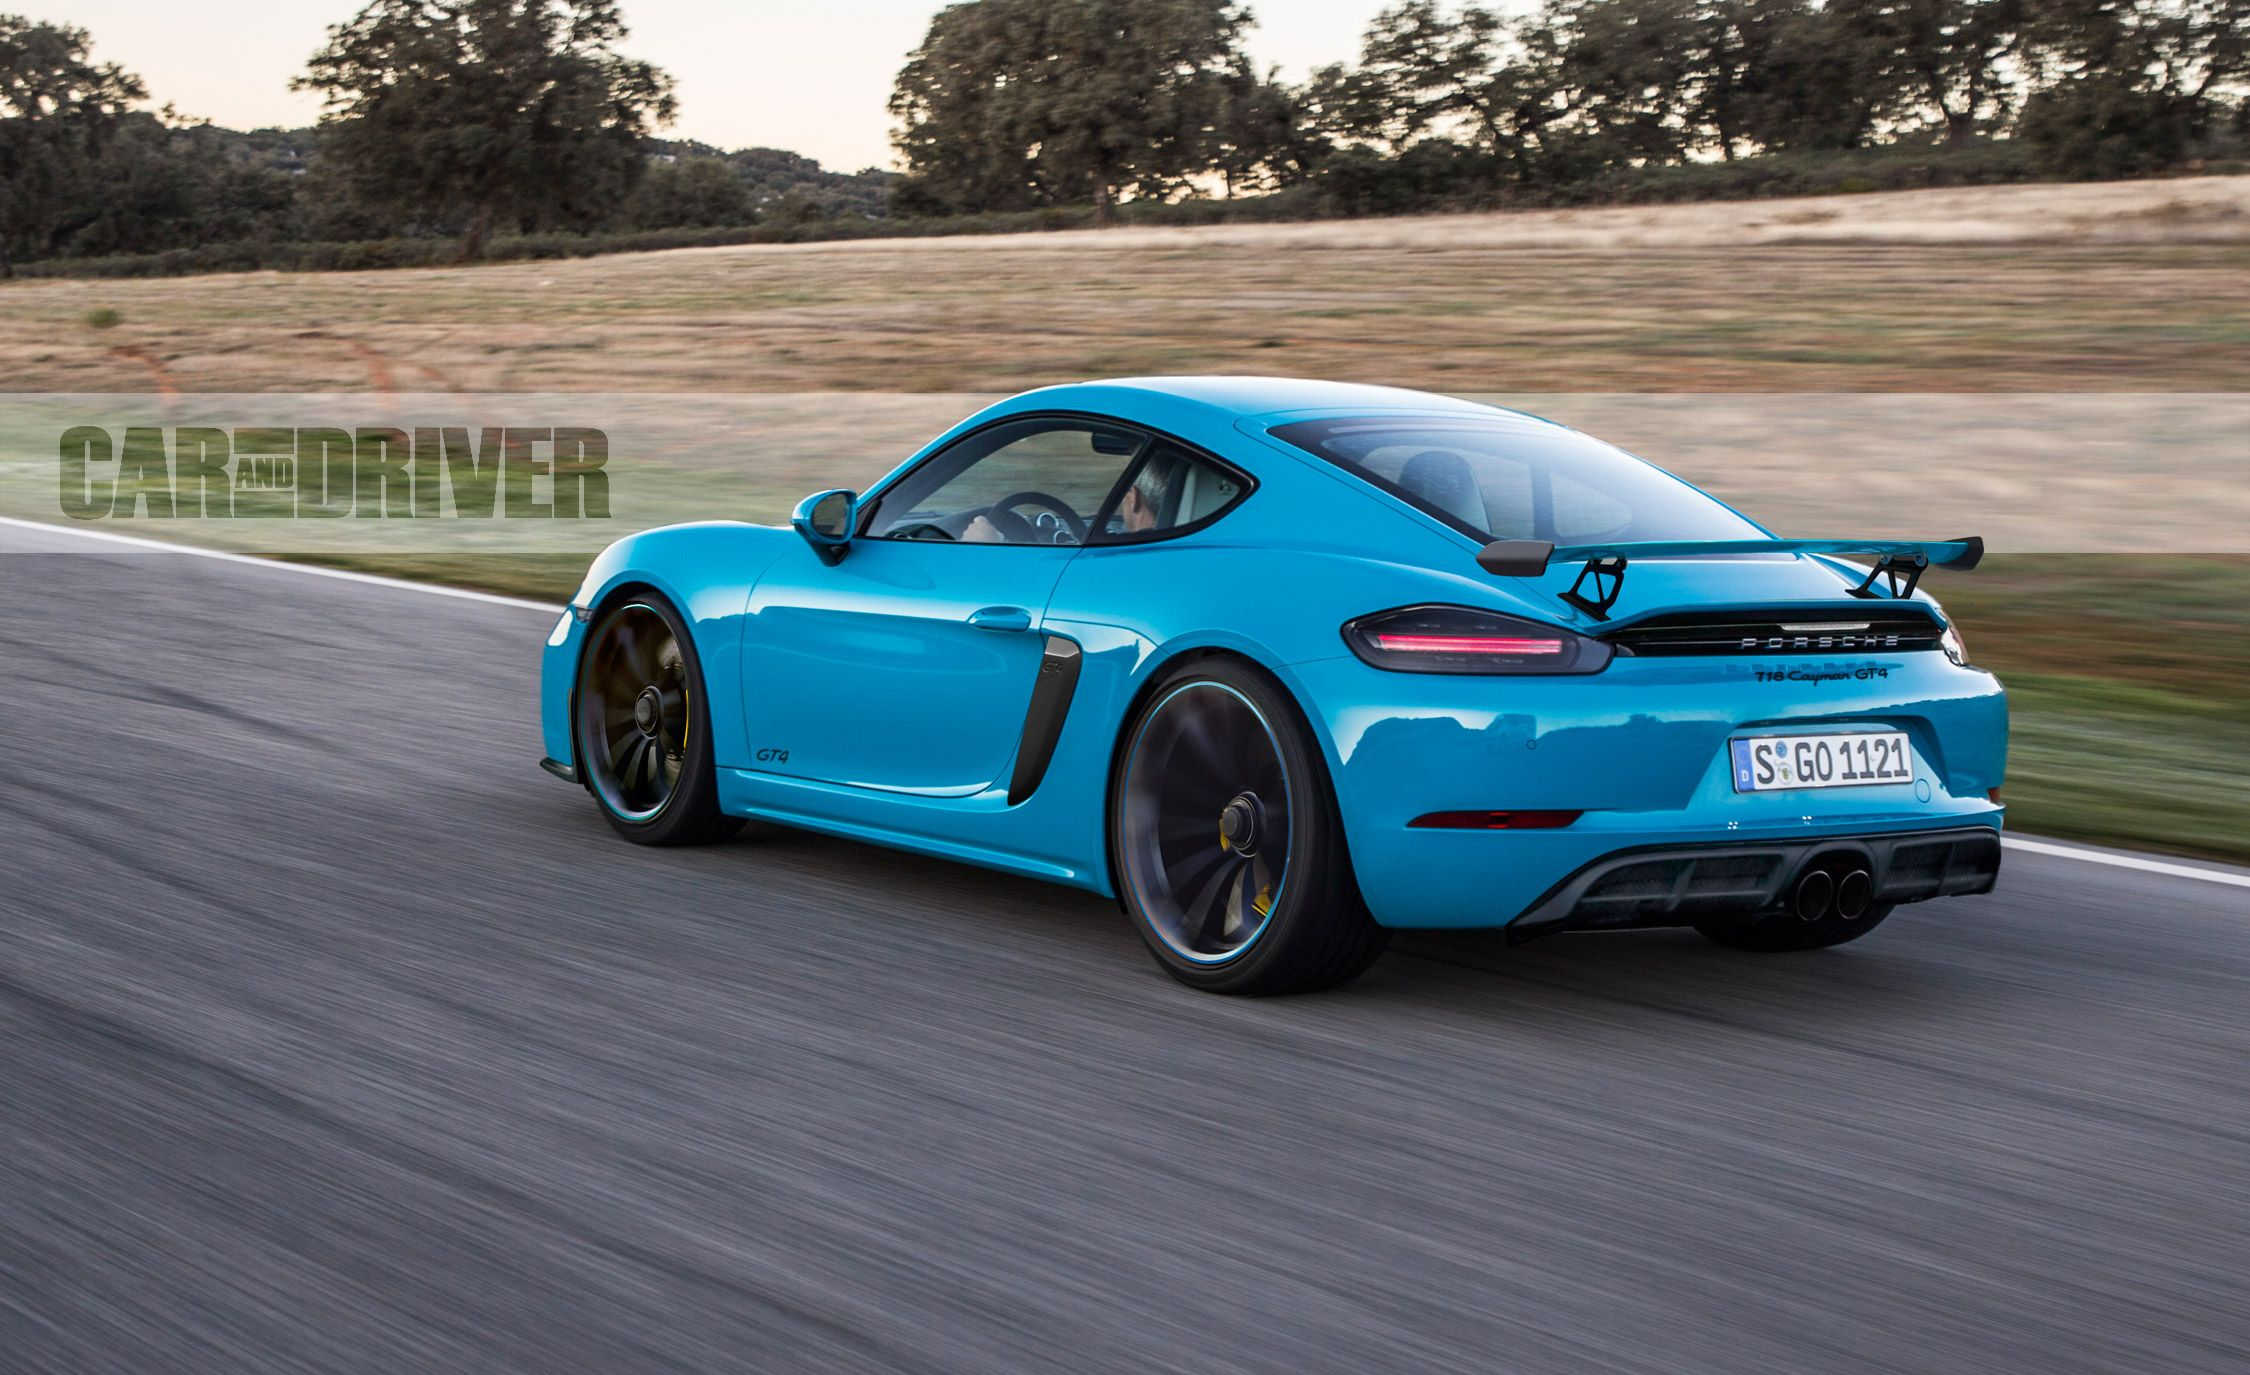 2017 Suvs Worth Waiting For >> 2019 Porsche 718 Cayman GT4: The 911 GT3's Little Brother Is Back | 25 Cars Worth Waiting For ...